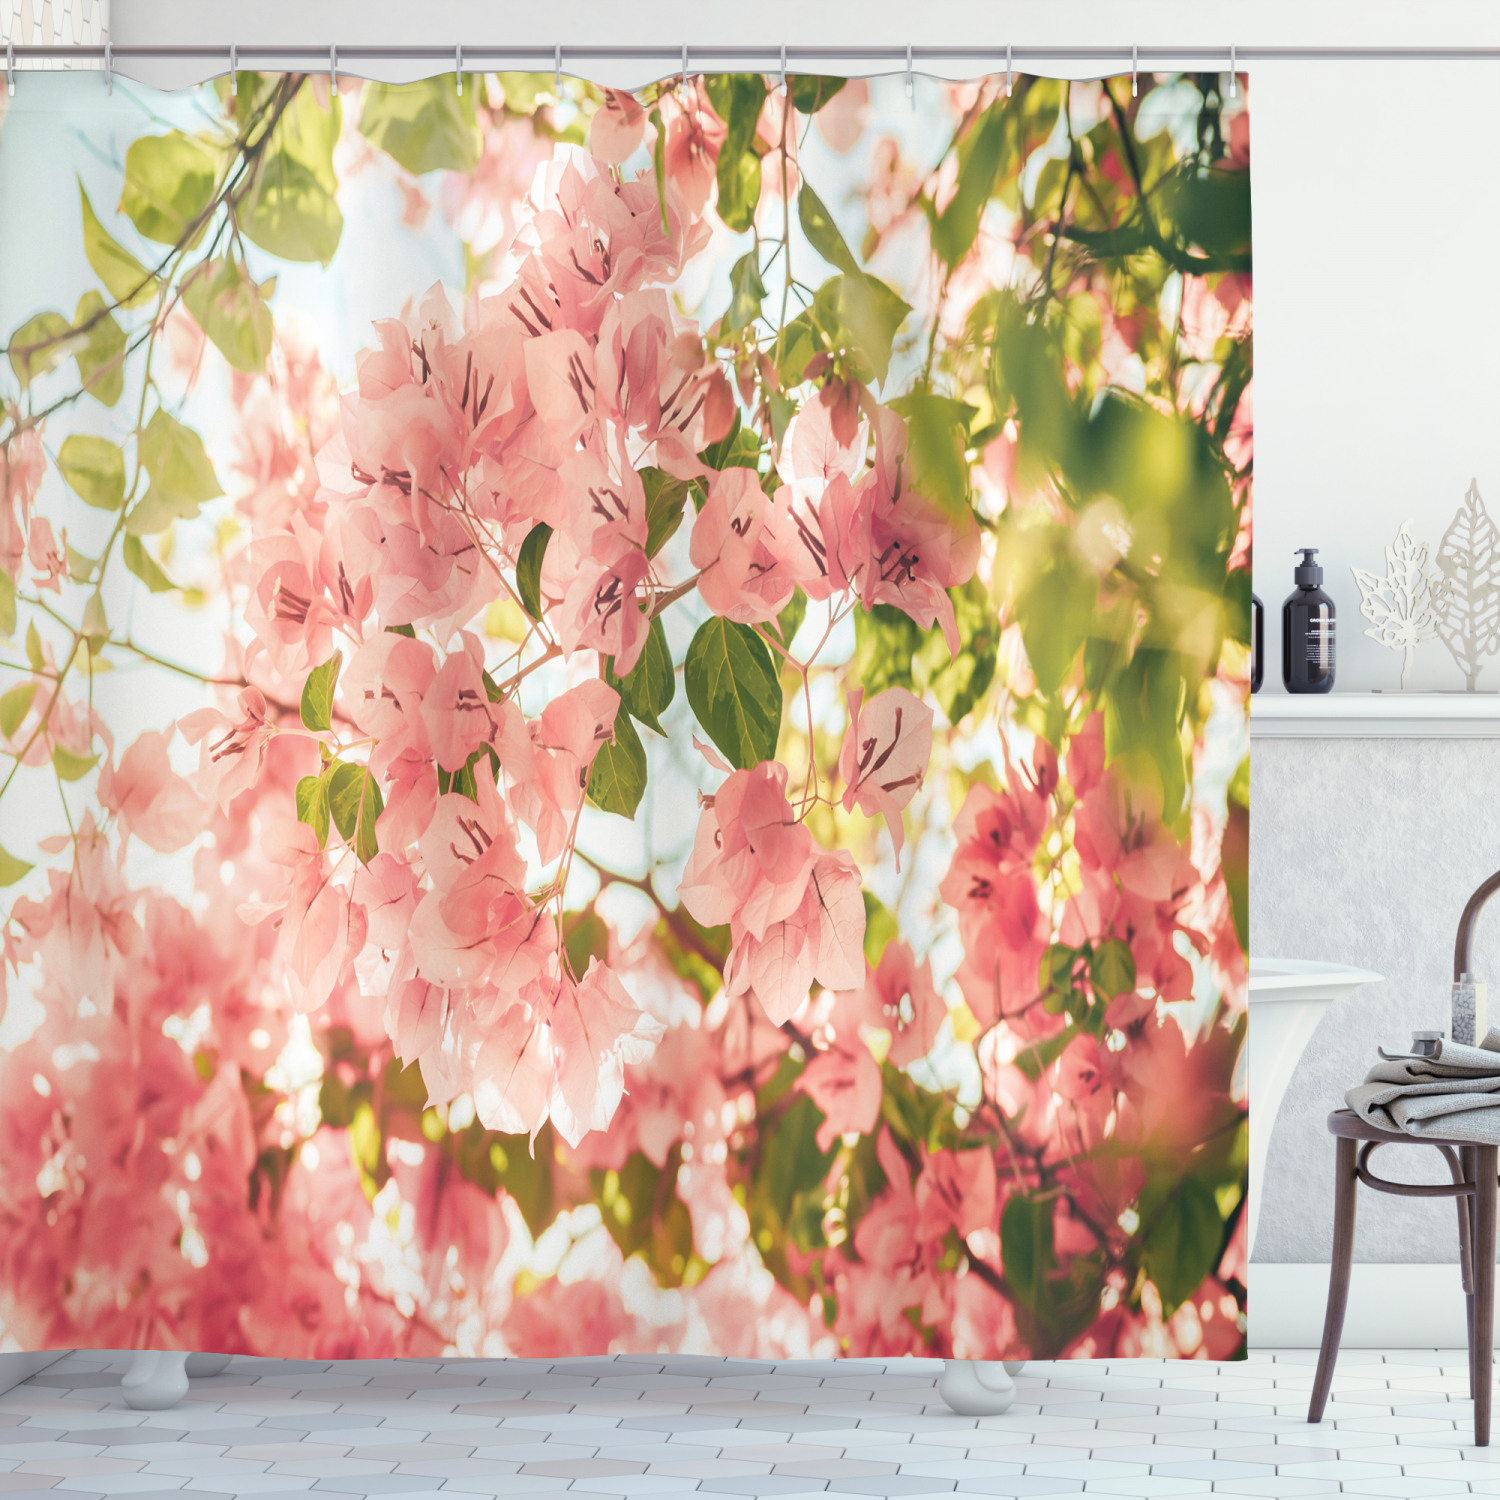 spring shower curtain bougainvillea flowers branches in sunny summer blossoms nature park view fabric bathroom set with hooks 69w x 84l inches